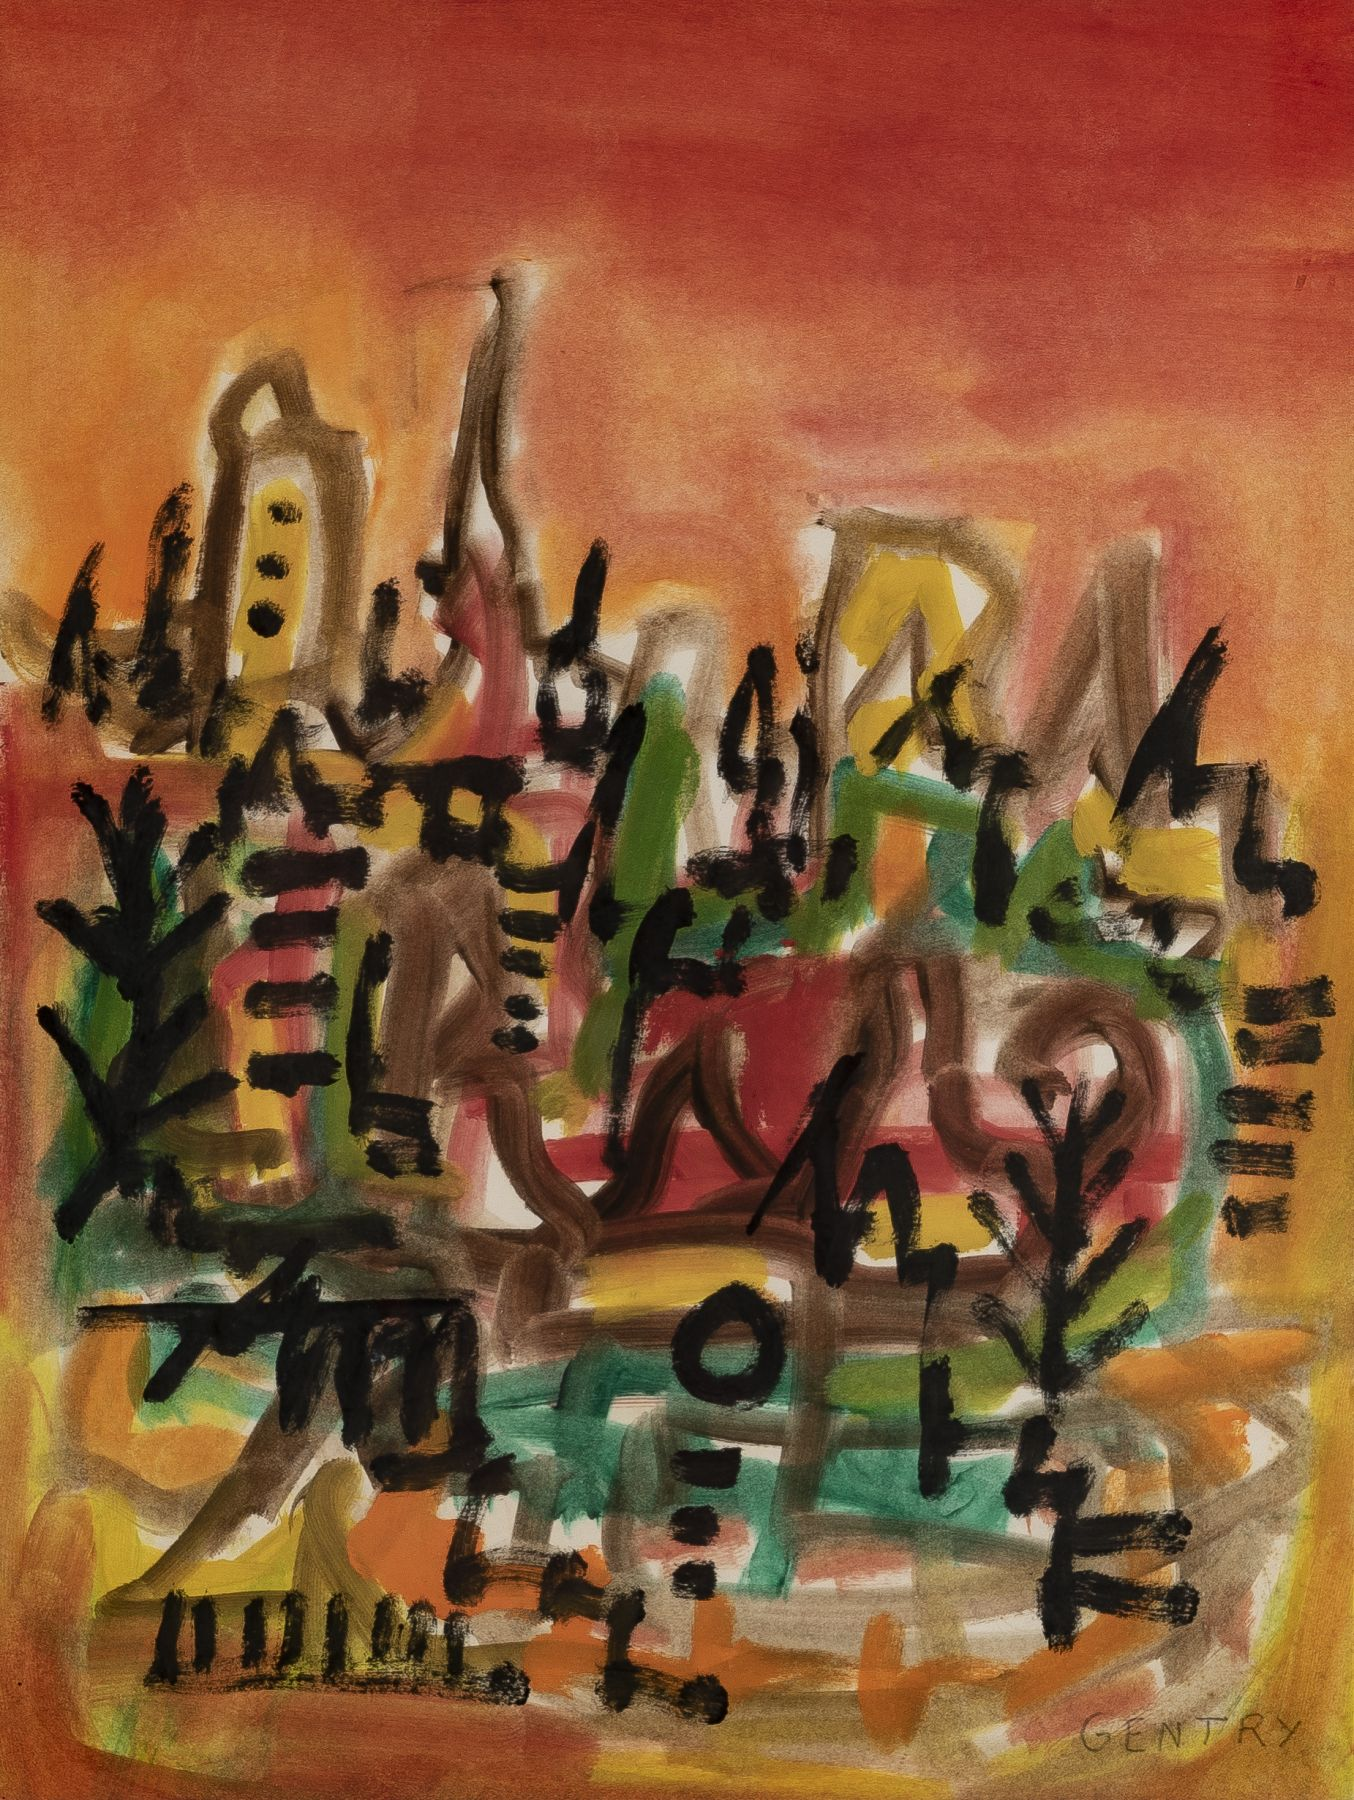 Herbert Gentry, Cityscape (probably Paris), 1960